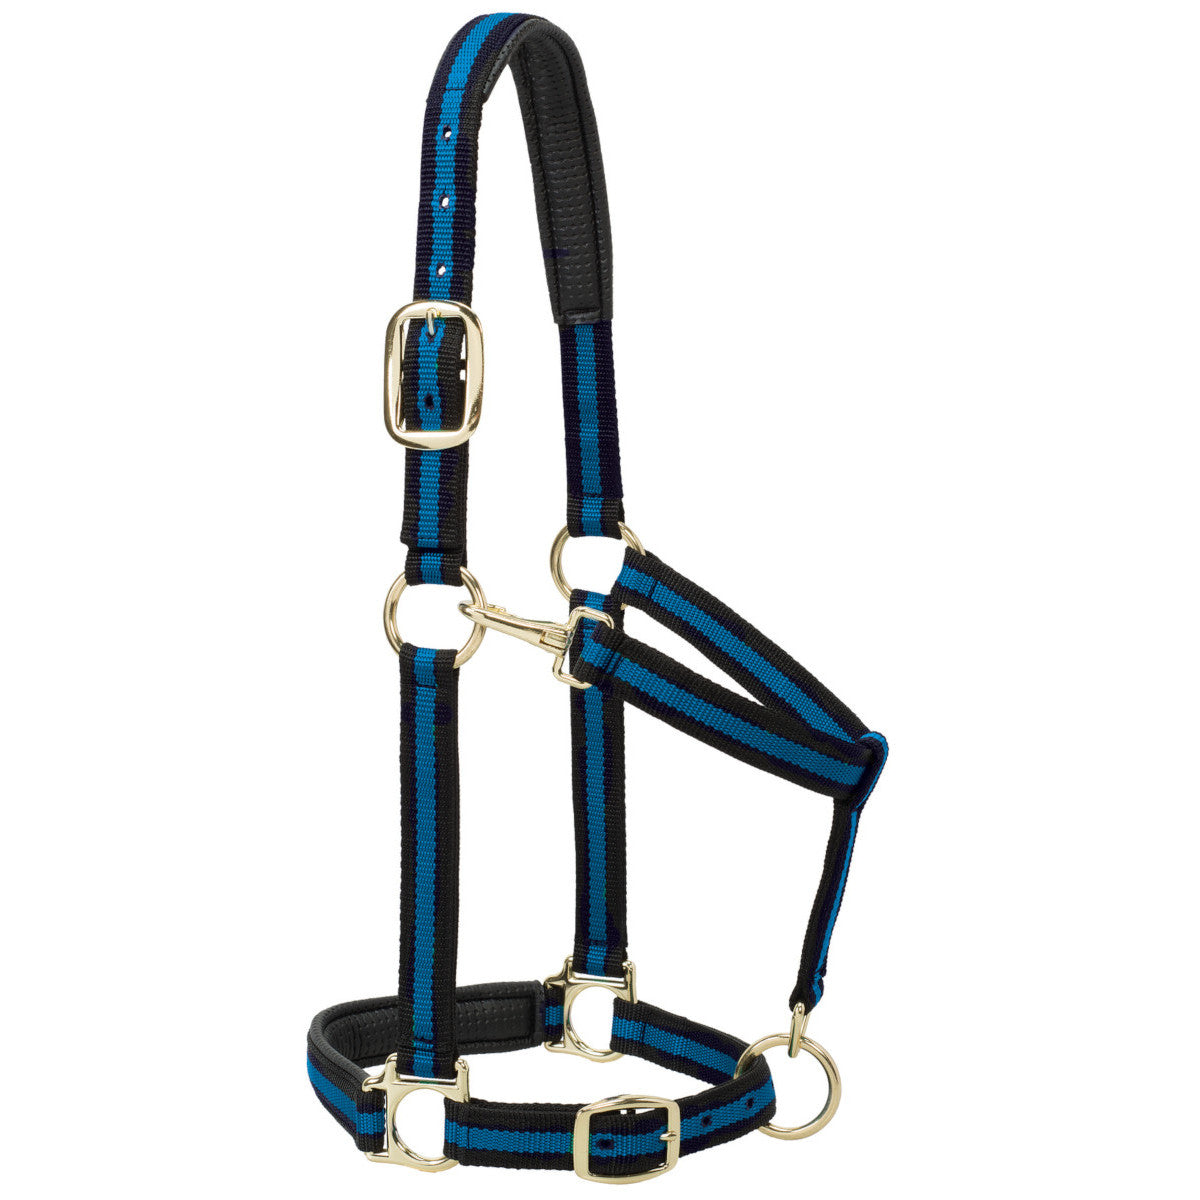 Weaver Striped Padded Adjustable Chin and Throat Snap Halter